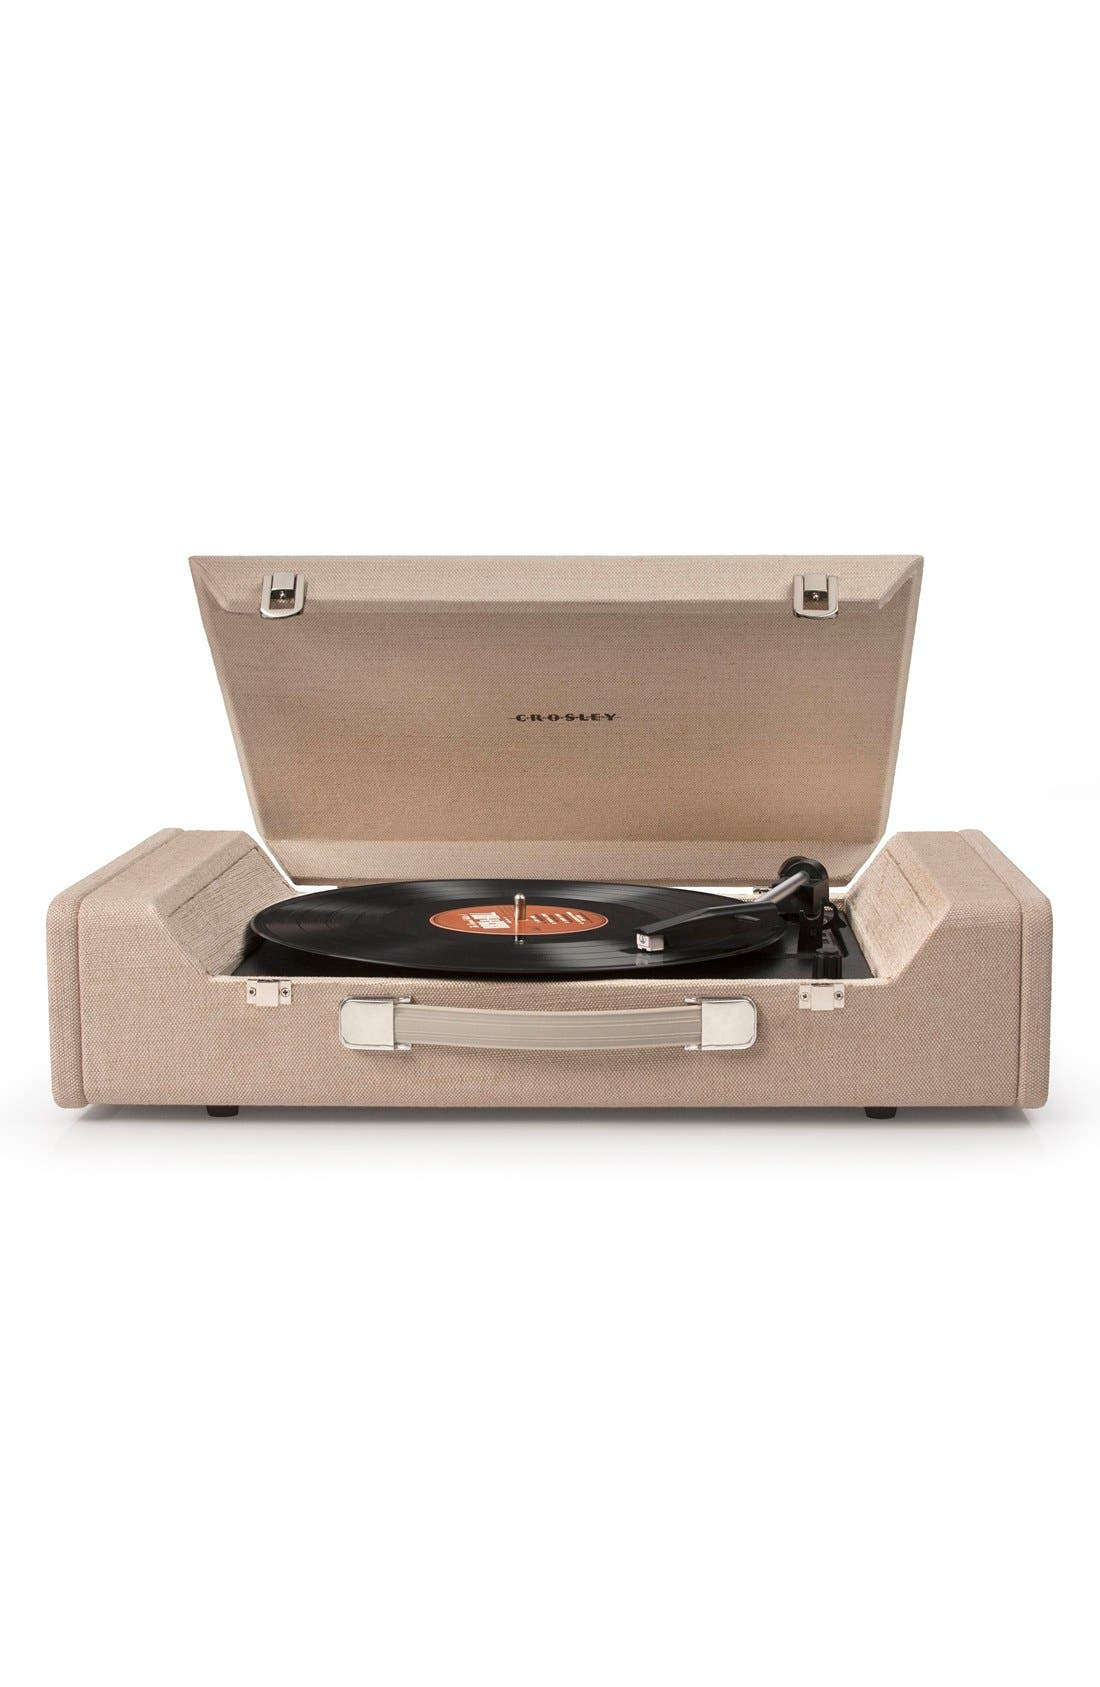 'Nomad' Turntable,                         Main,                         color, Beige/ Khaki